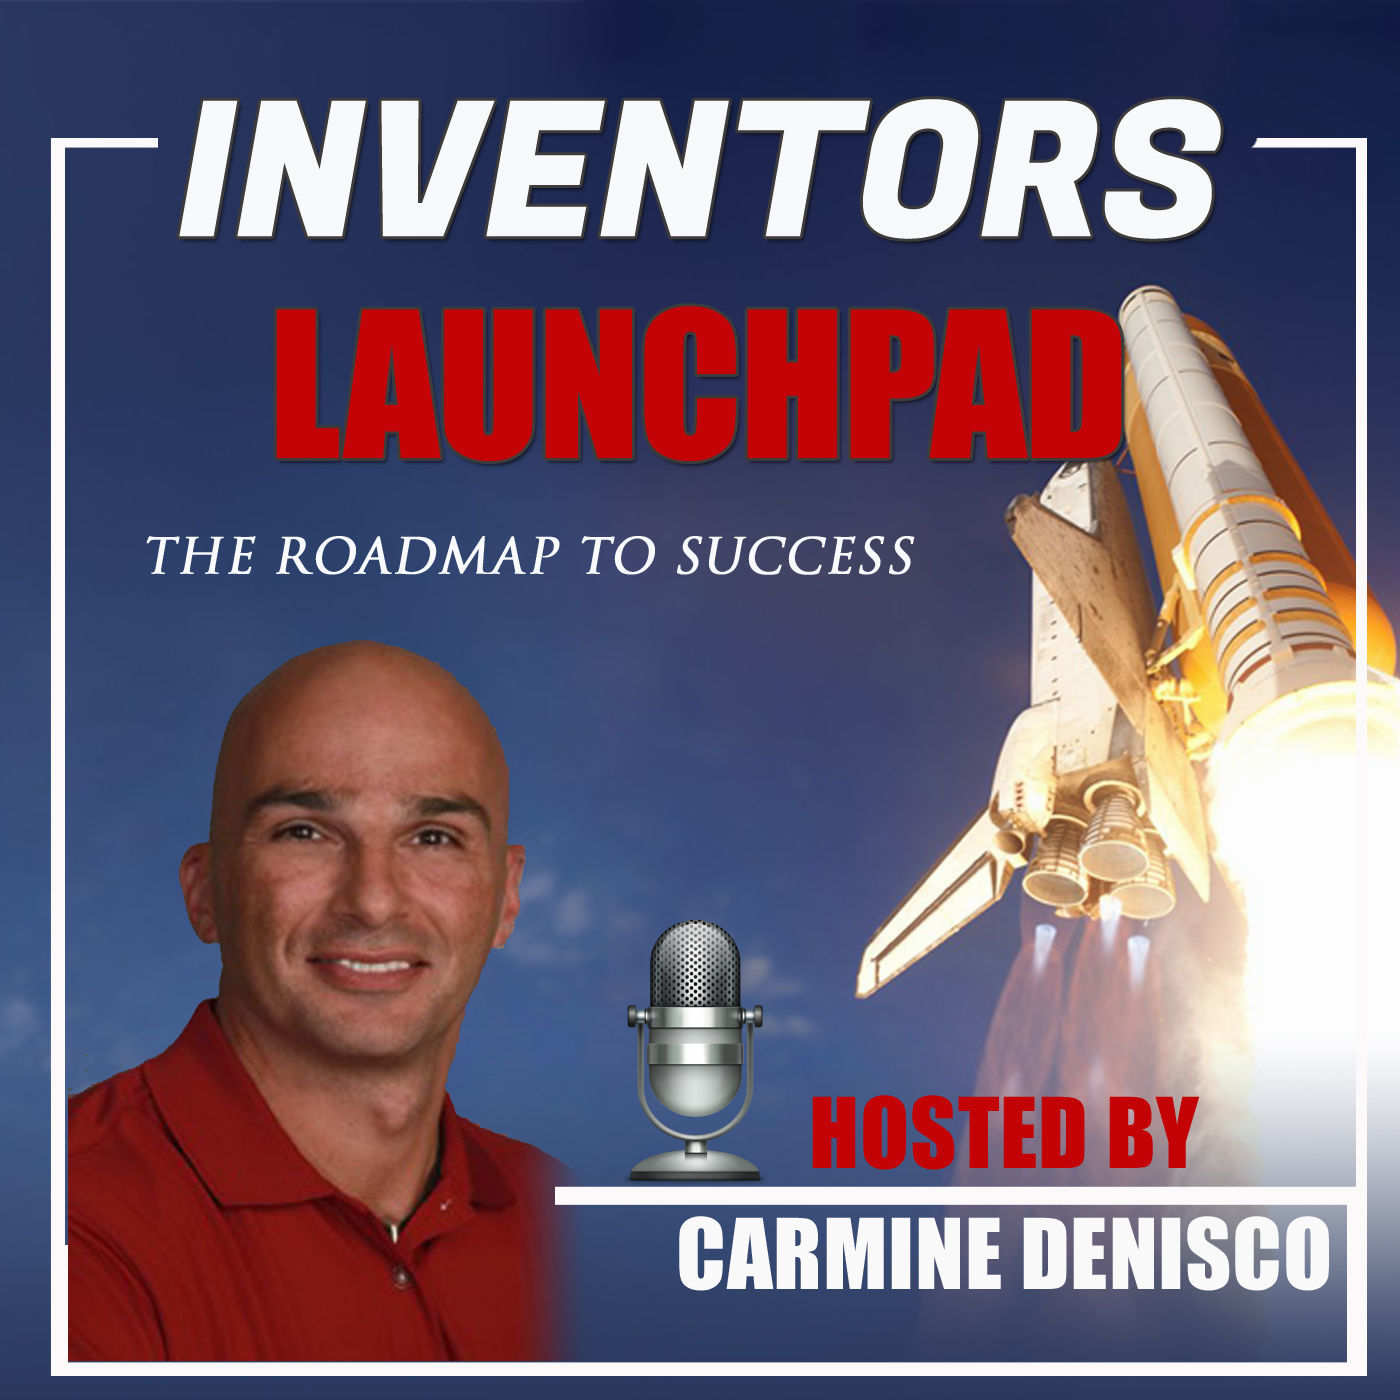 Artwork for S2e7 - January Takeaways, We Go Over the Information Covered in the Month of January Invention, TV, Manufacturing, Start ups, Podcast, Shark Tank we had it all hosted by Carmine Denisco